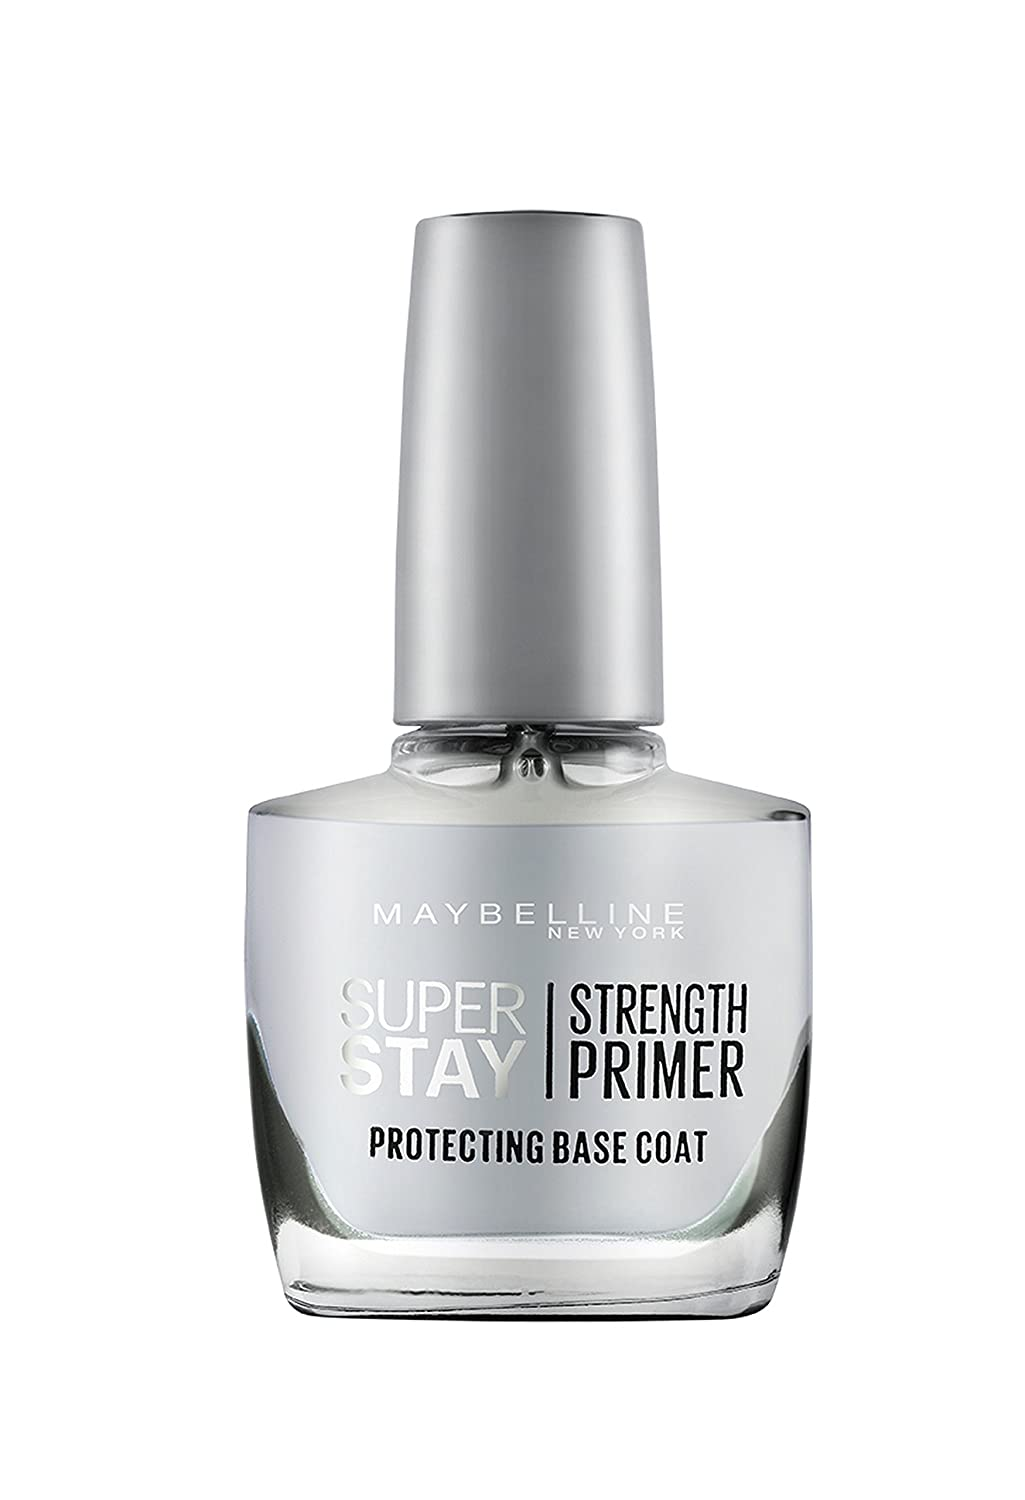 Maybelline Superstay Strength Primer Protecting Base Coat L'Oreal 3600531400309